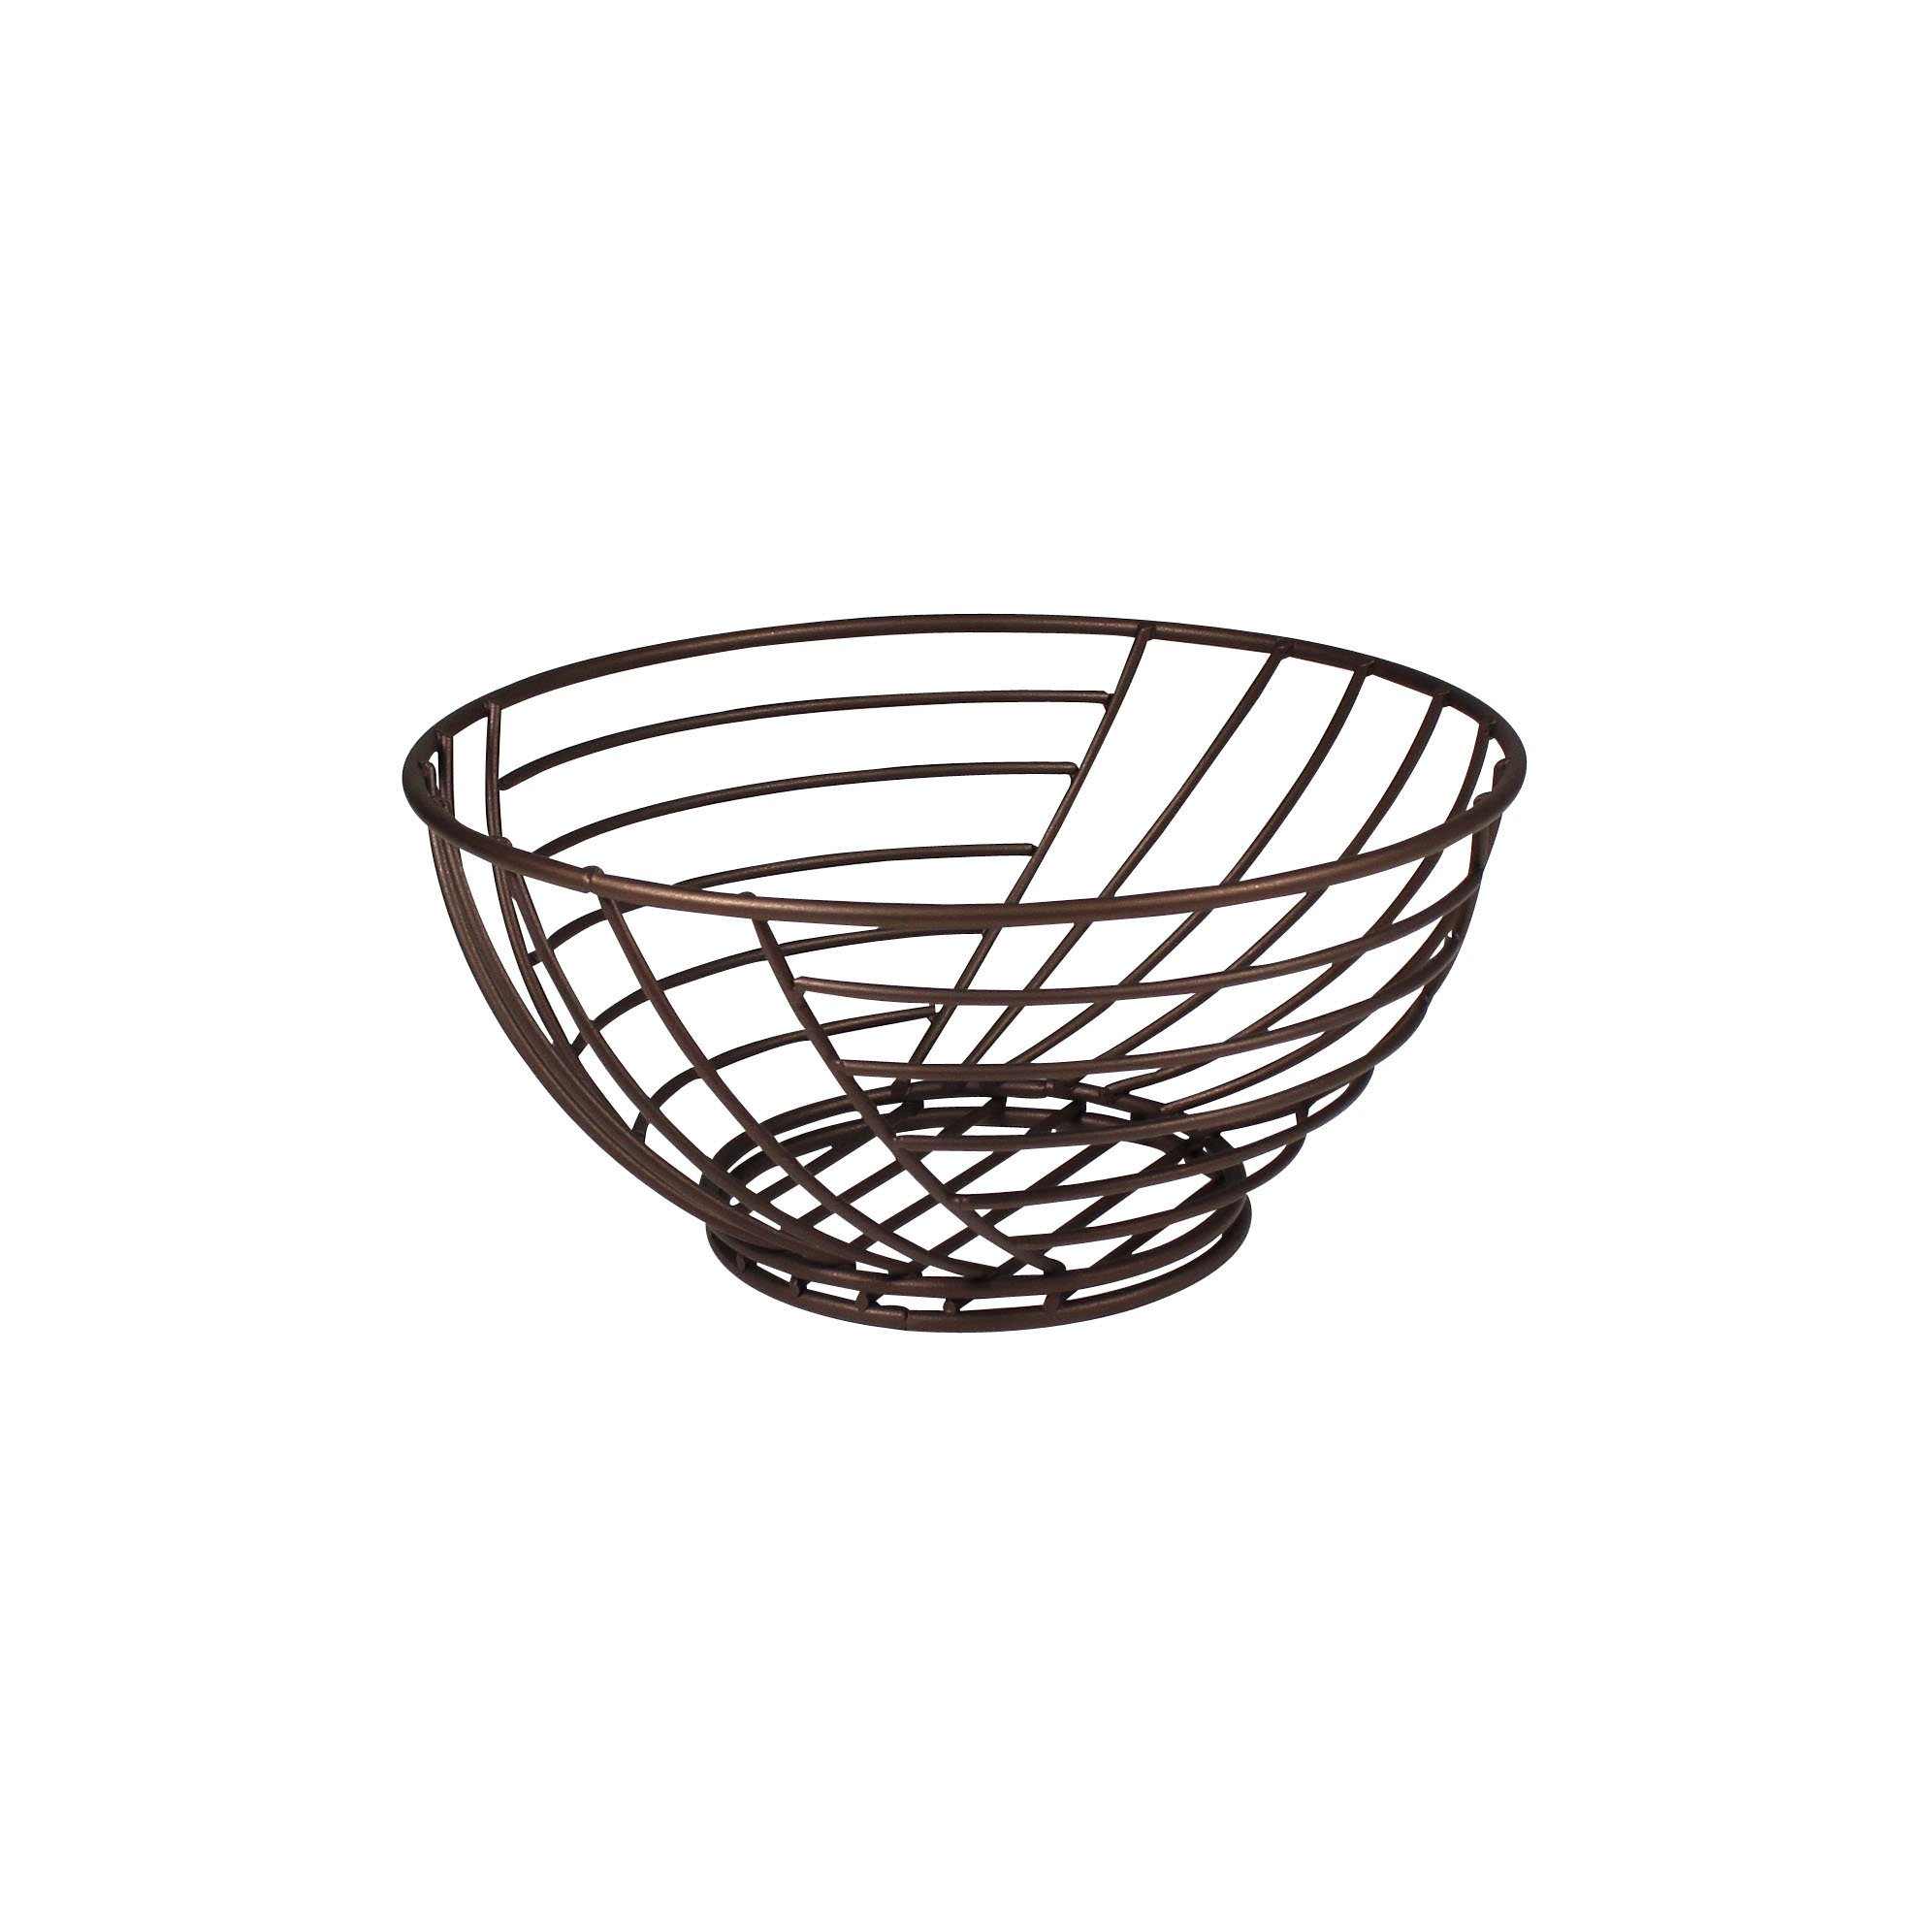 Spectrum Diversified Wright Small Fruit Bowl, Bronze by Spectrum Diversified